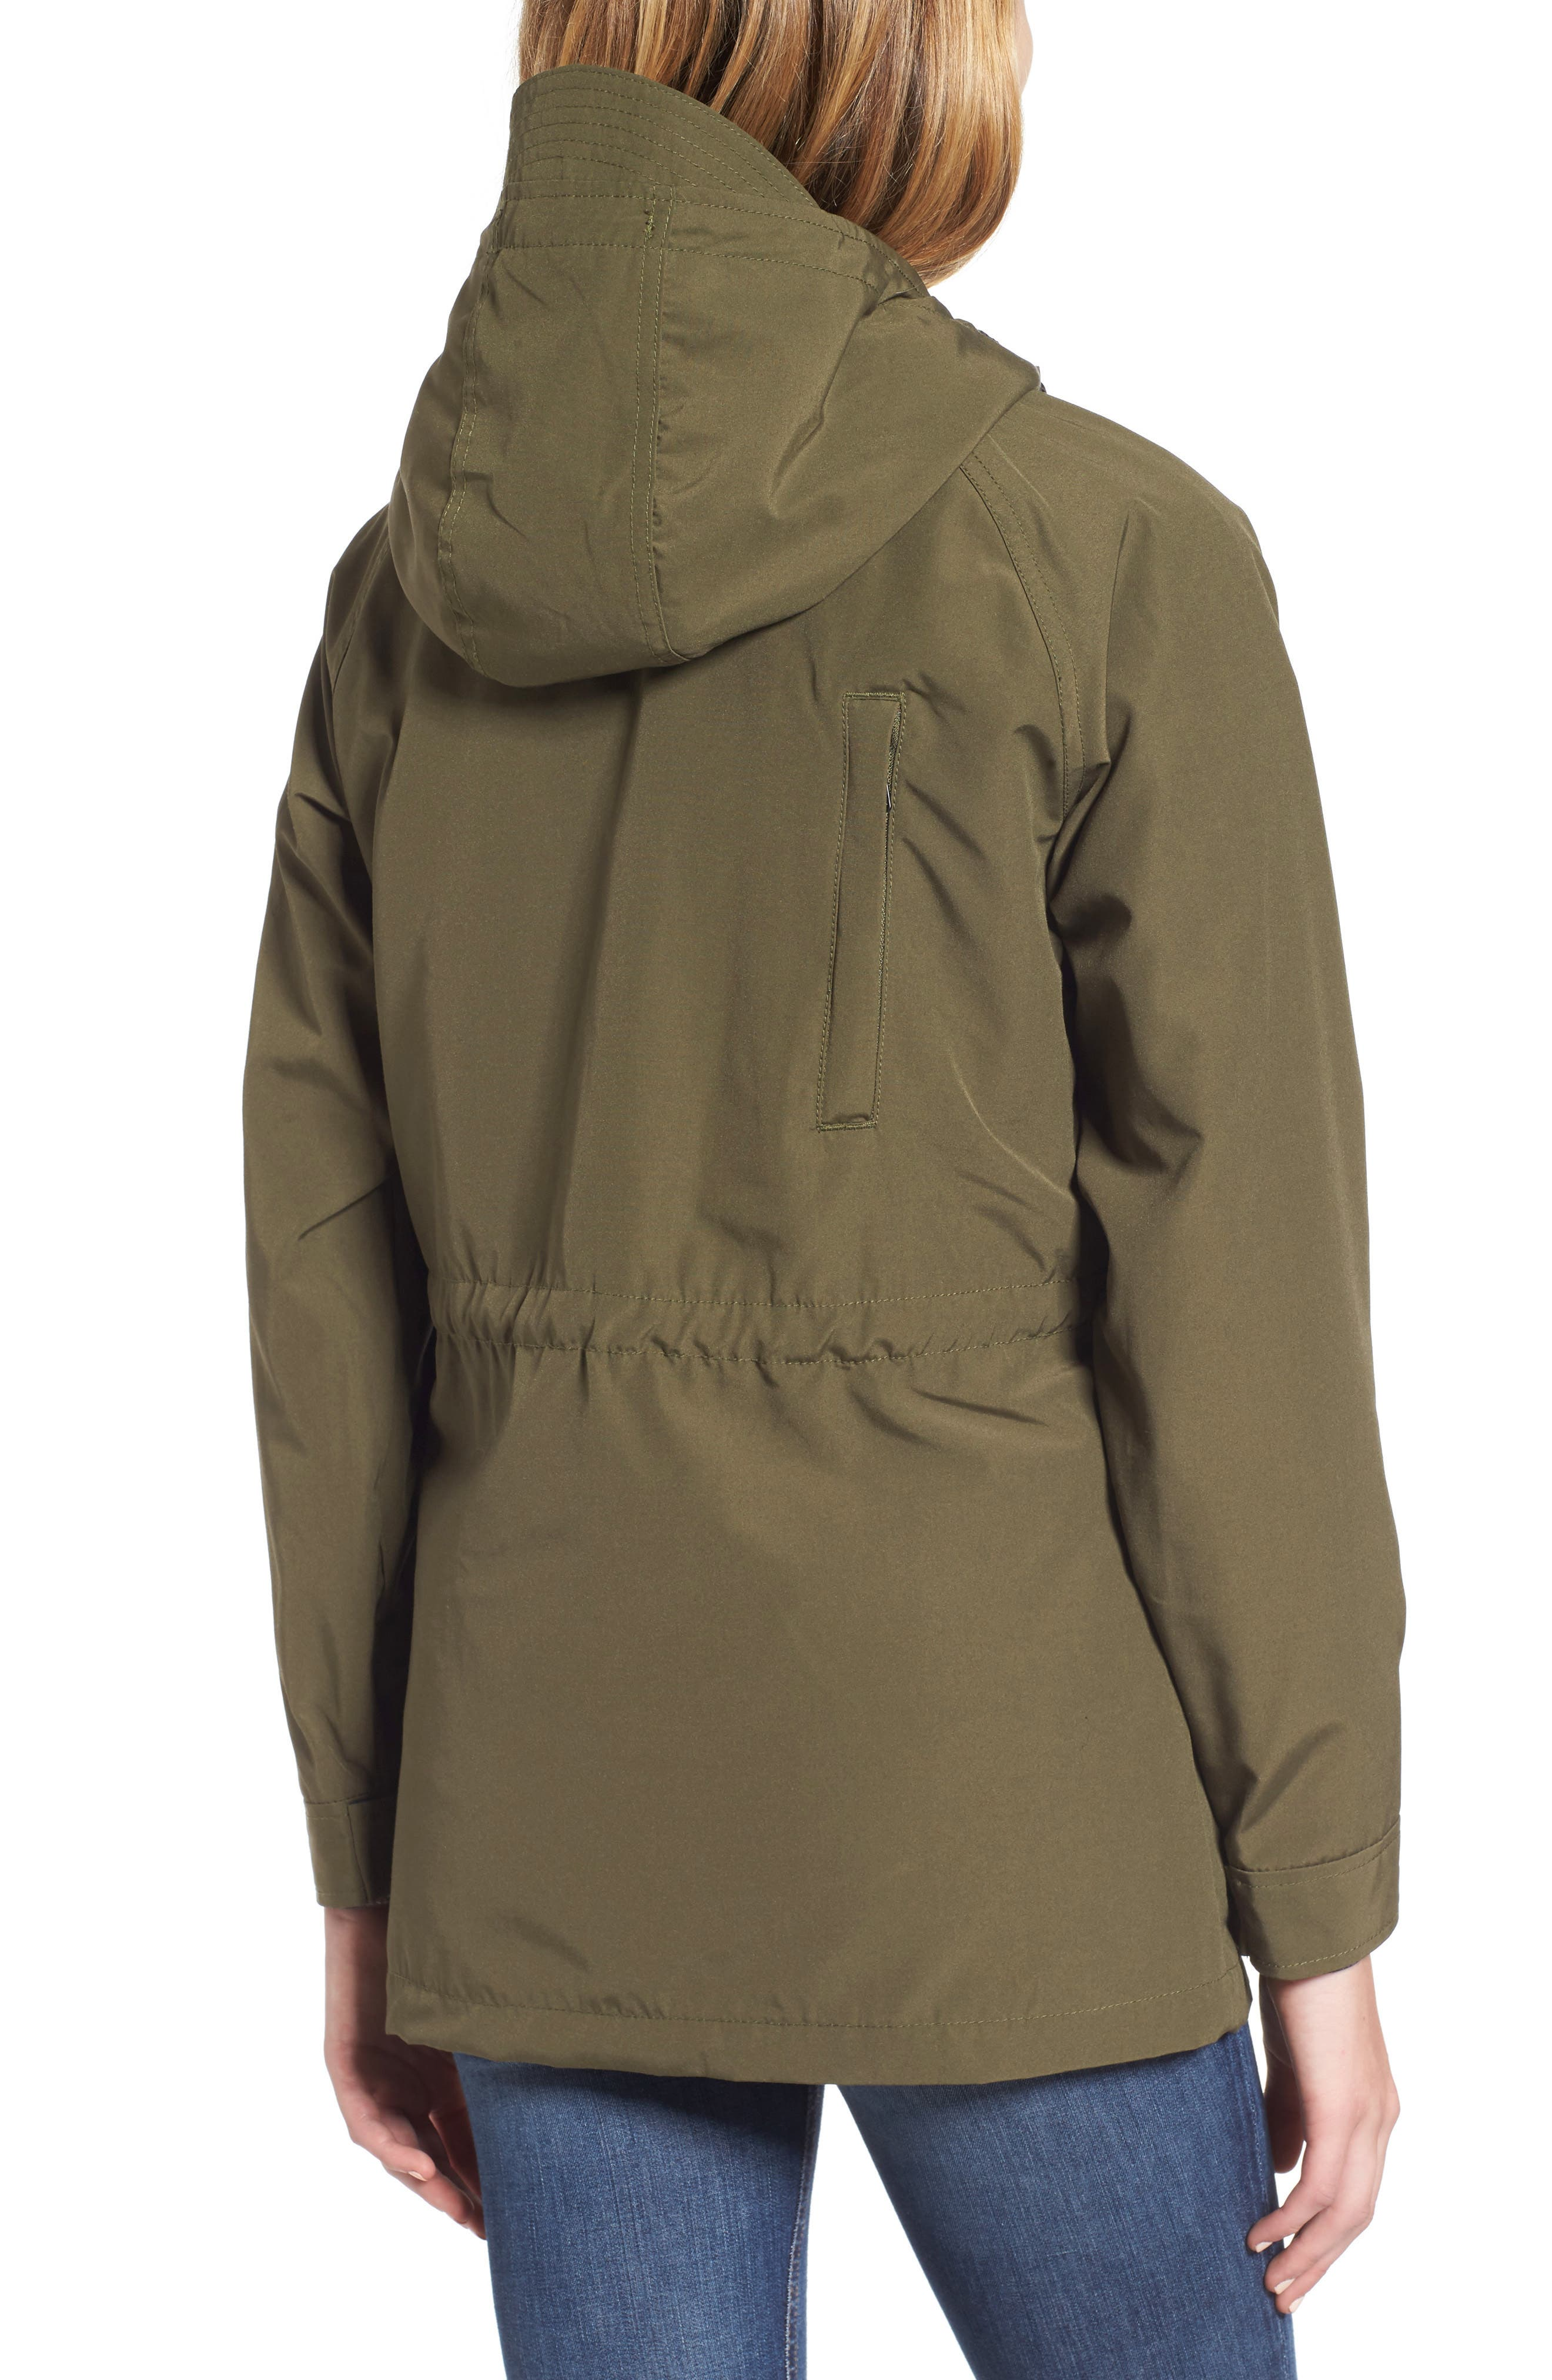 PENFIELD,                             'Kasson' Double Layer Mountain Parka,                             Alternate thumbnail 2, color,                             307